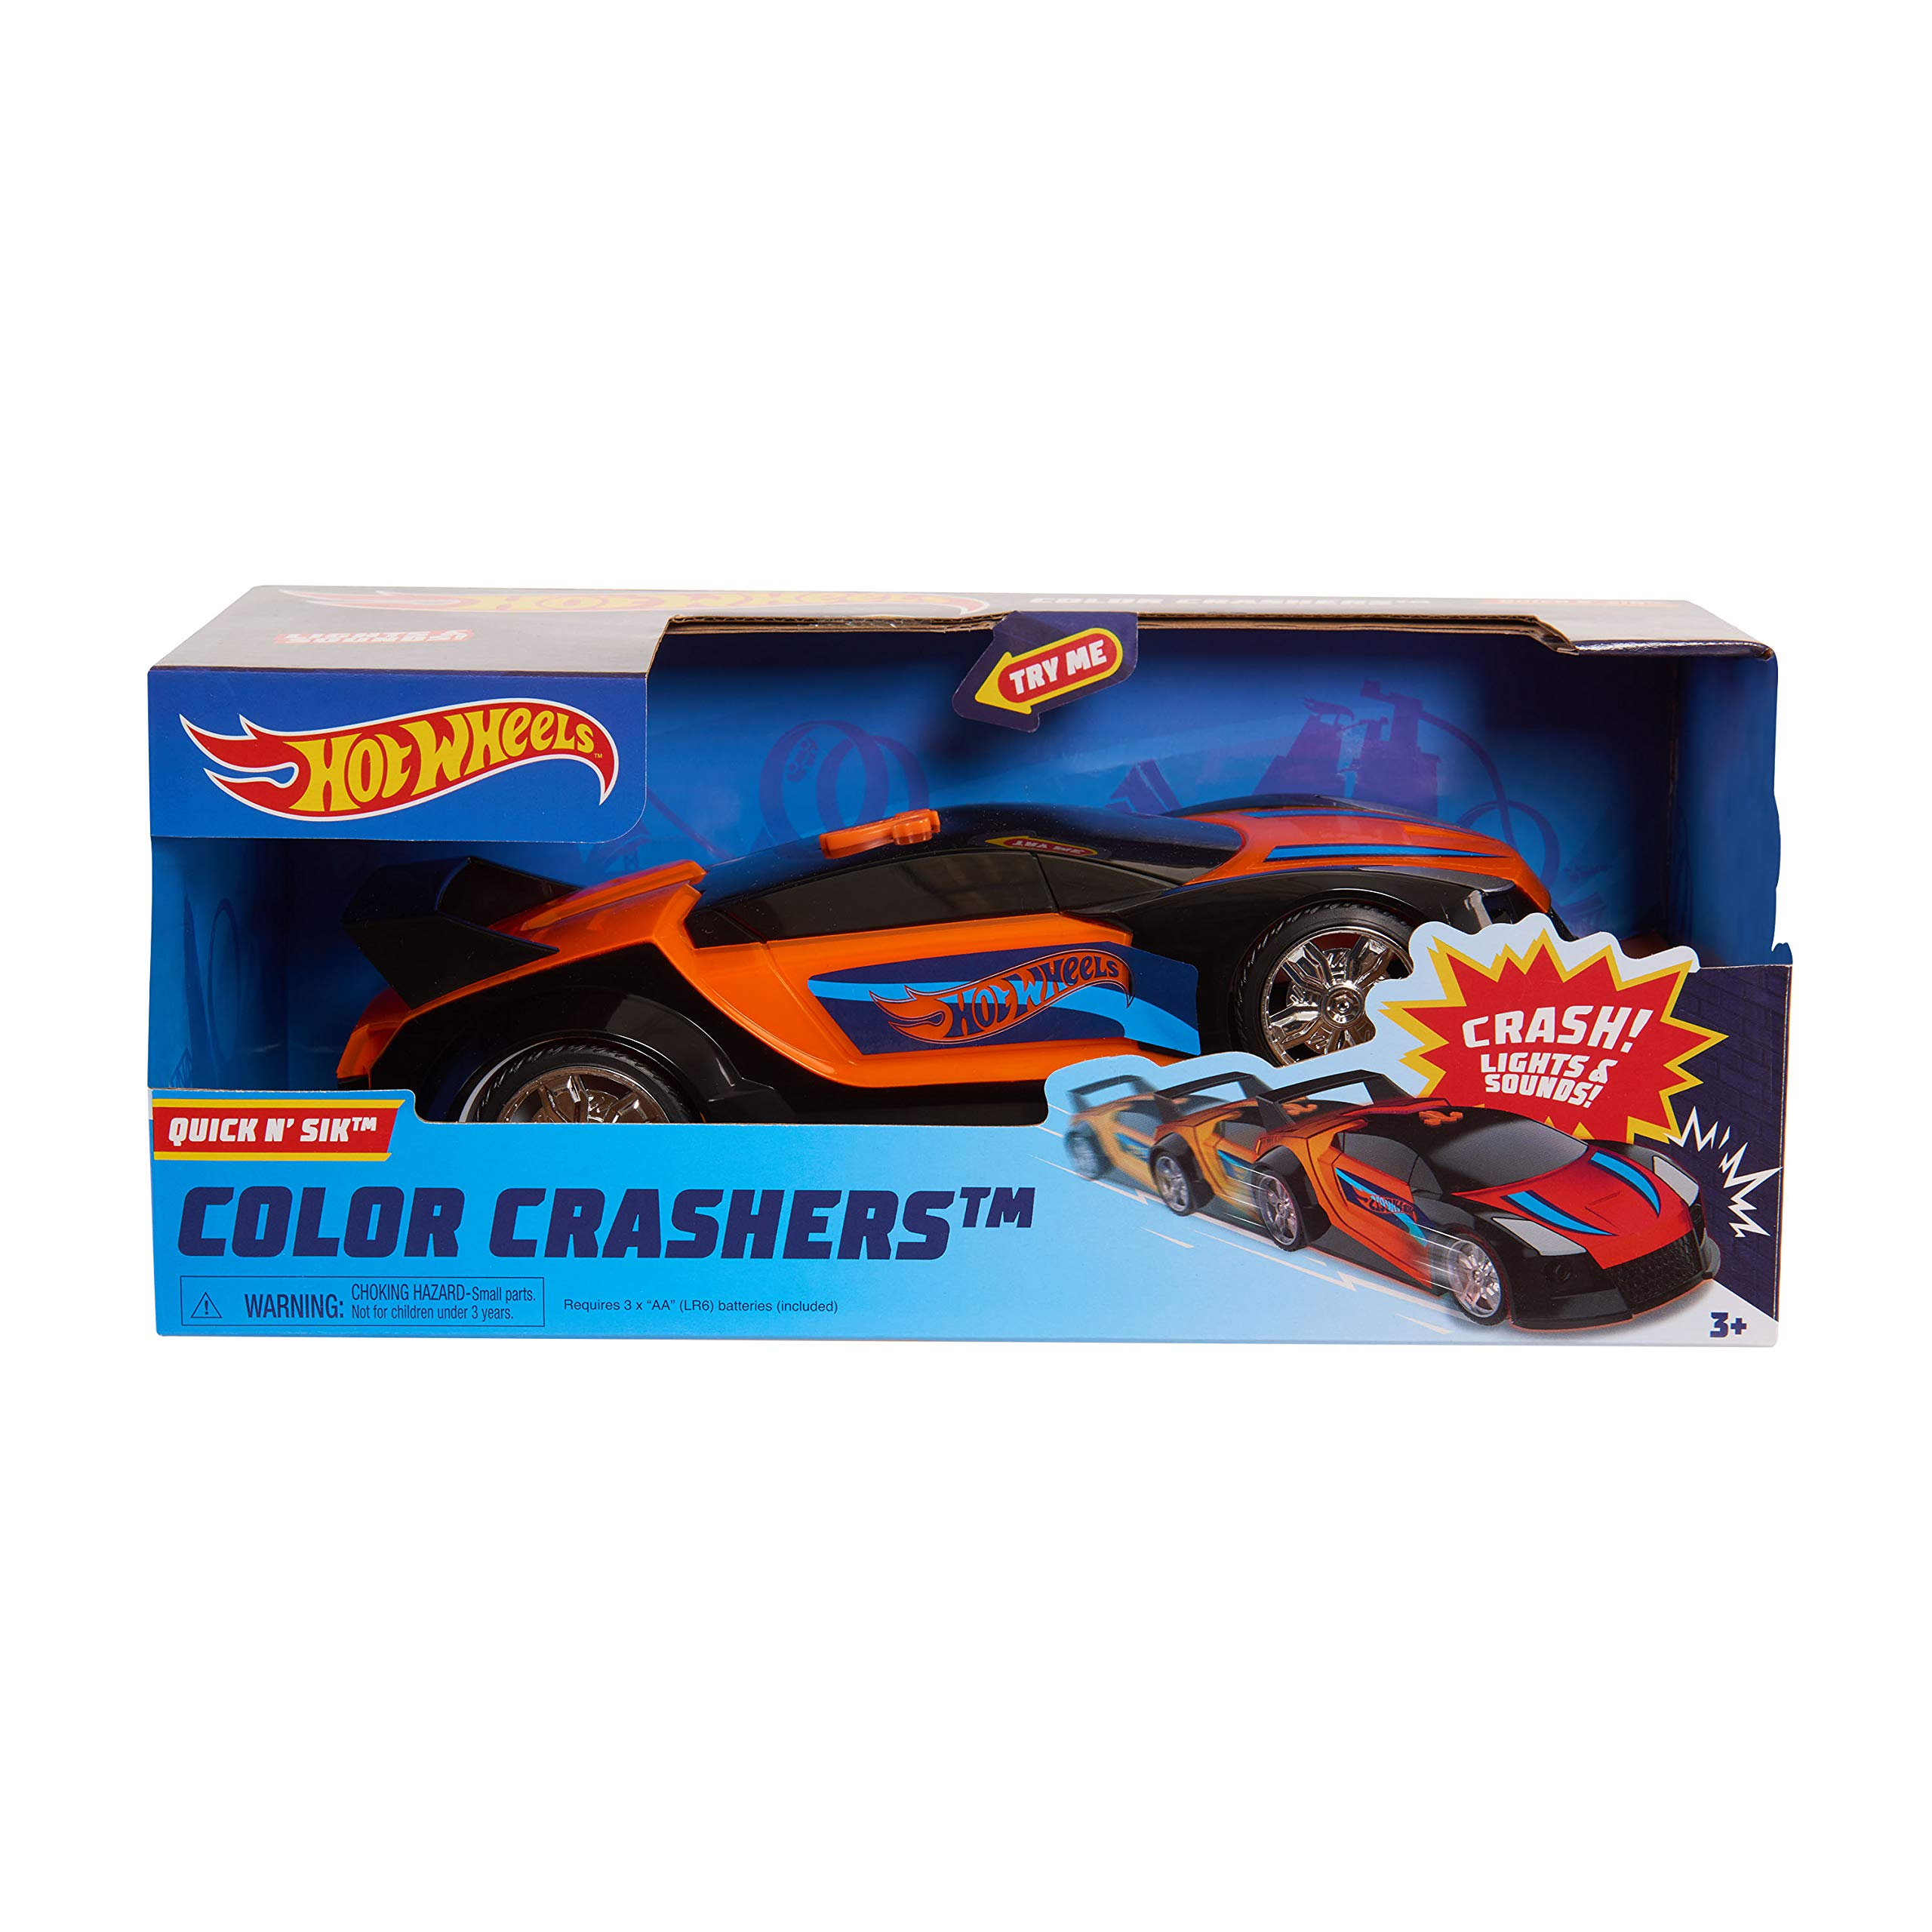 Hot Wheels Color Crashers Asst. Multi-color Quick N/' Sik